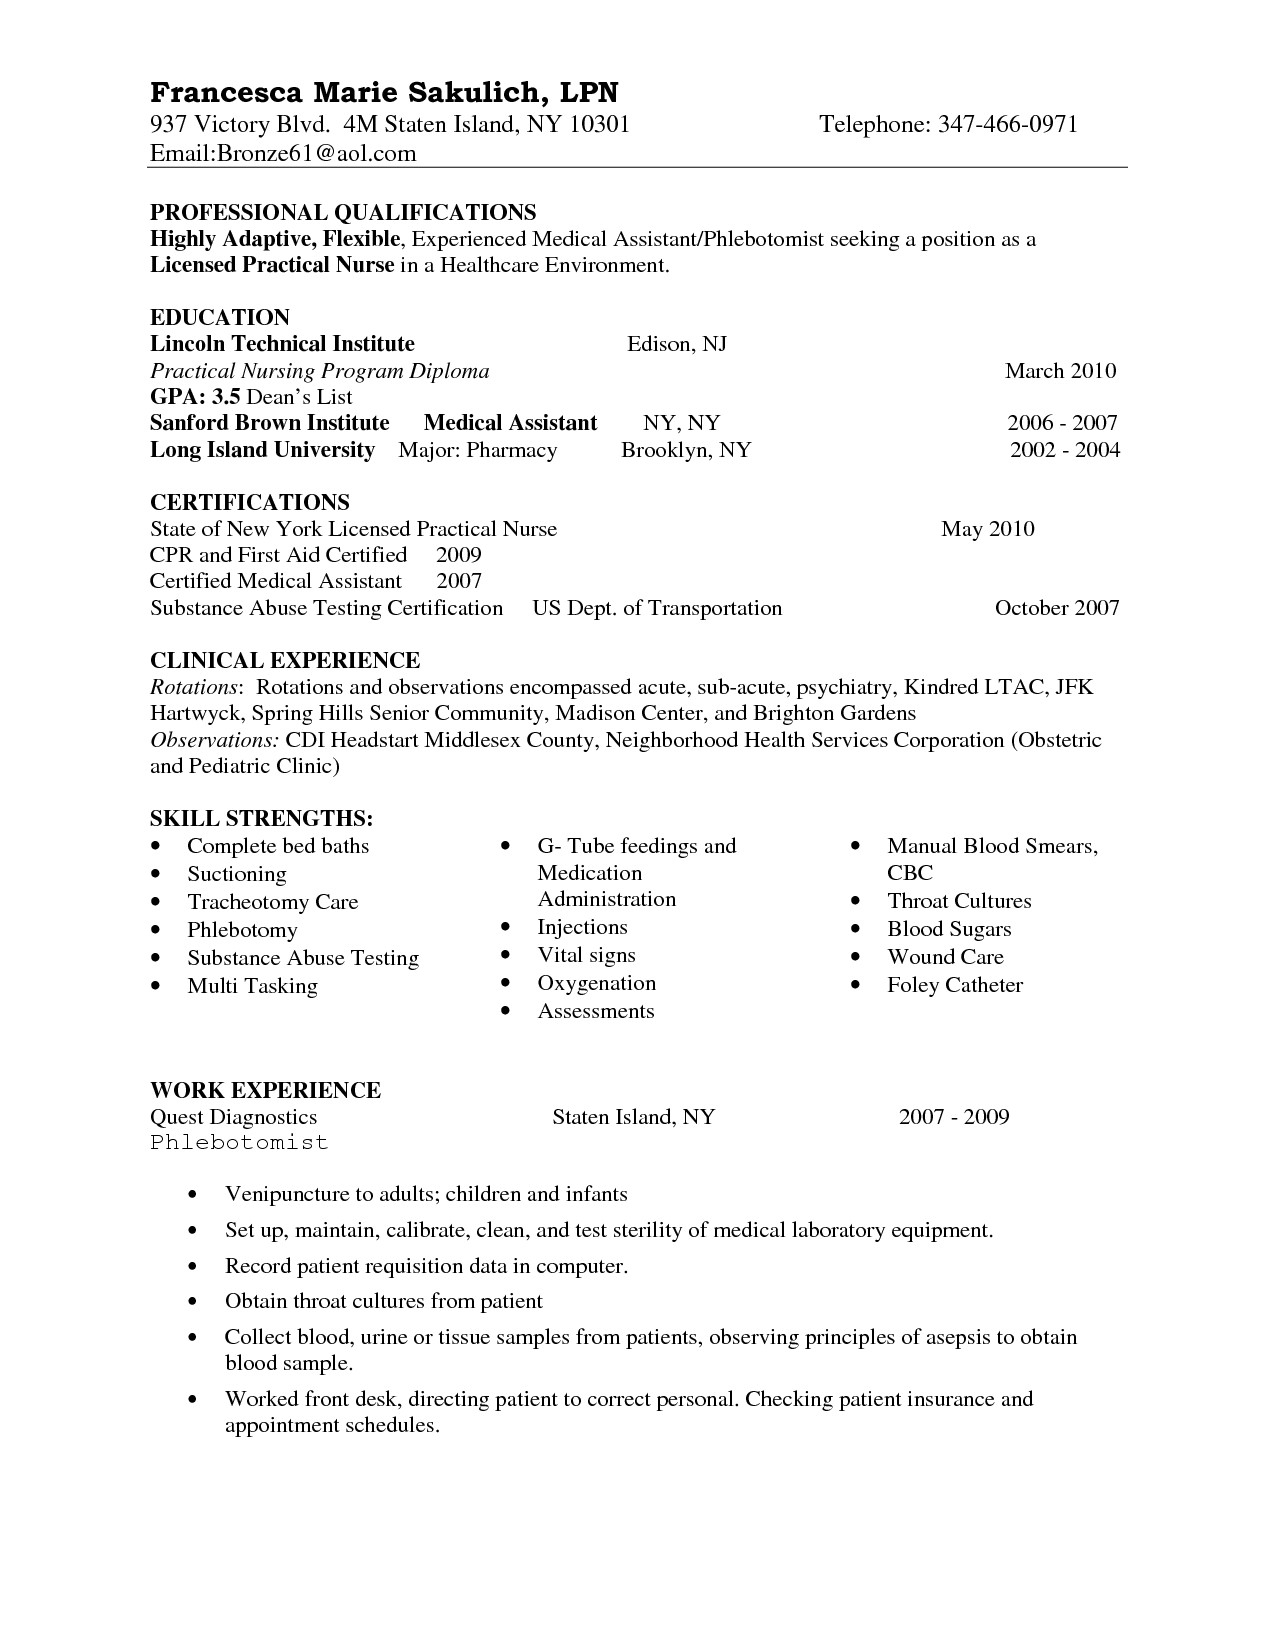 Sample Nursing Student Resume Clinical Experience - 24 New Entry Level Nursing Resume